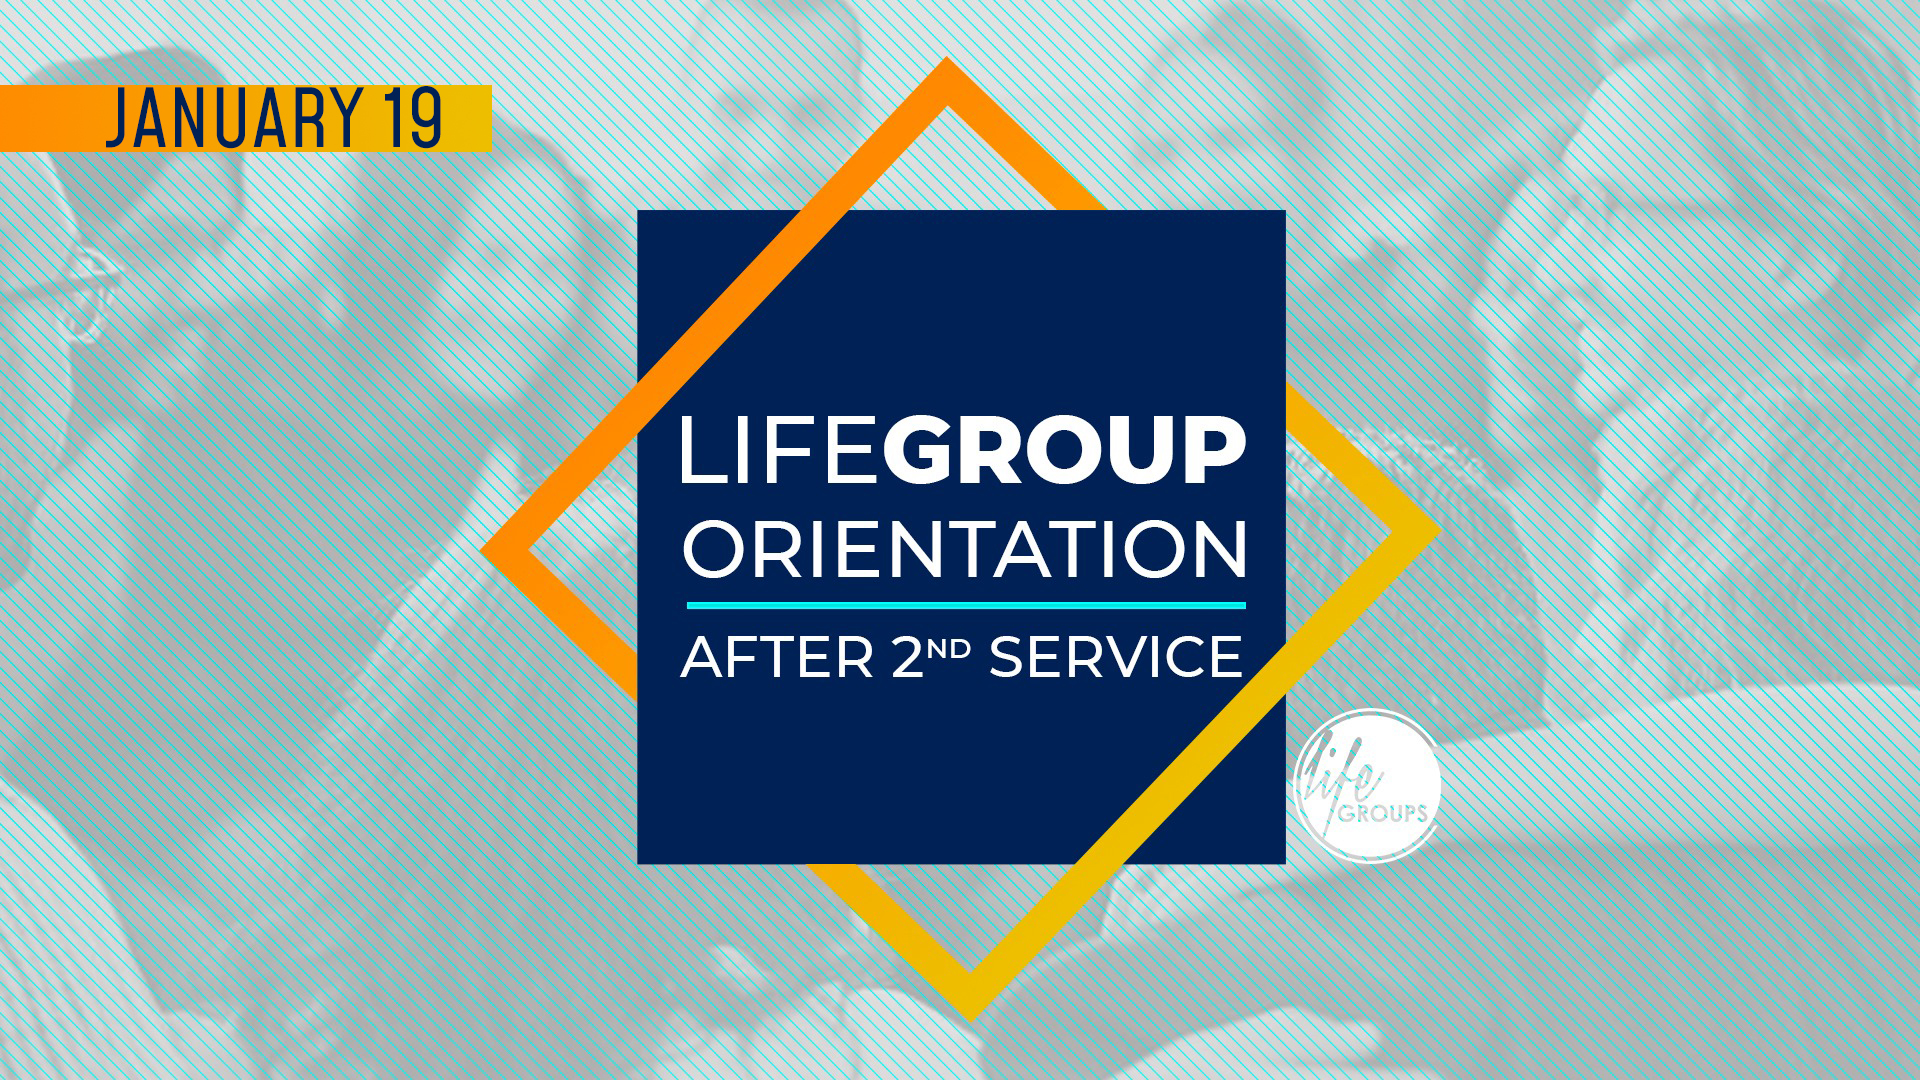 1.6 Life Group Orientation